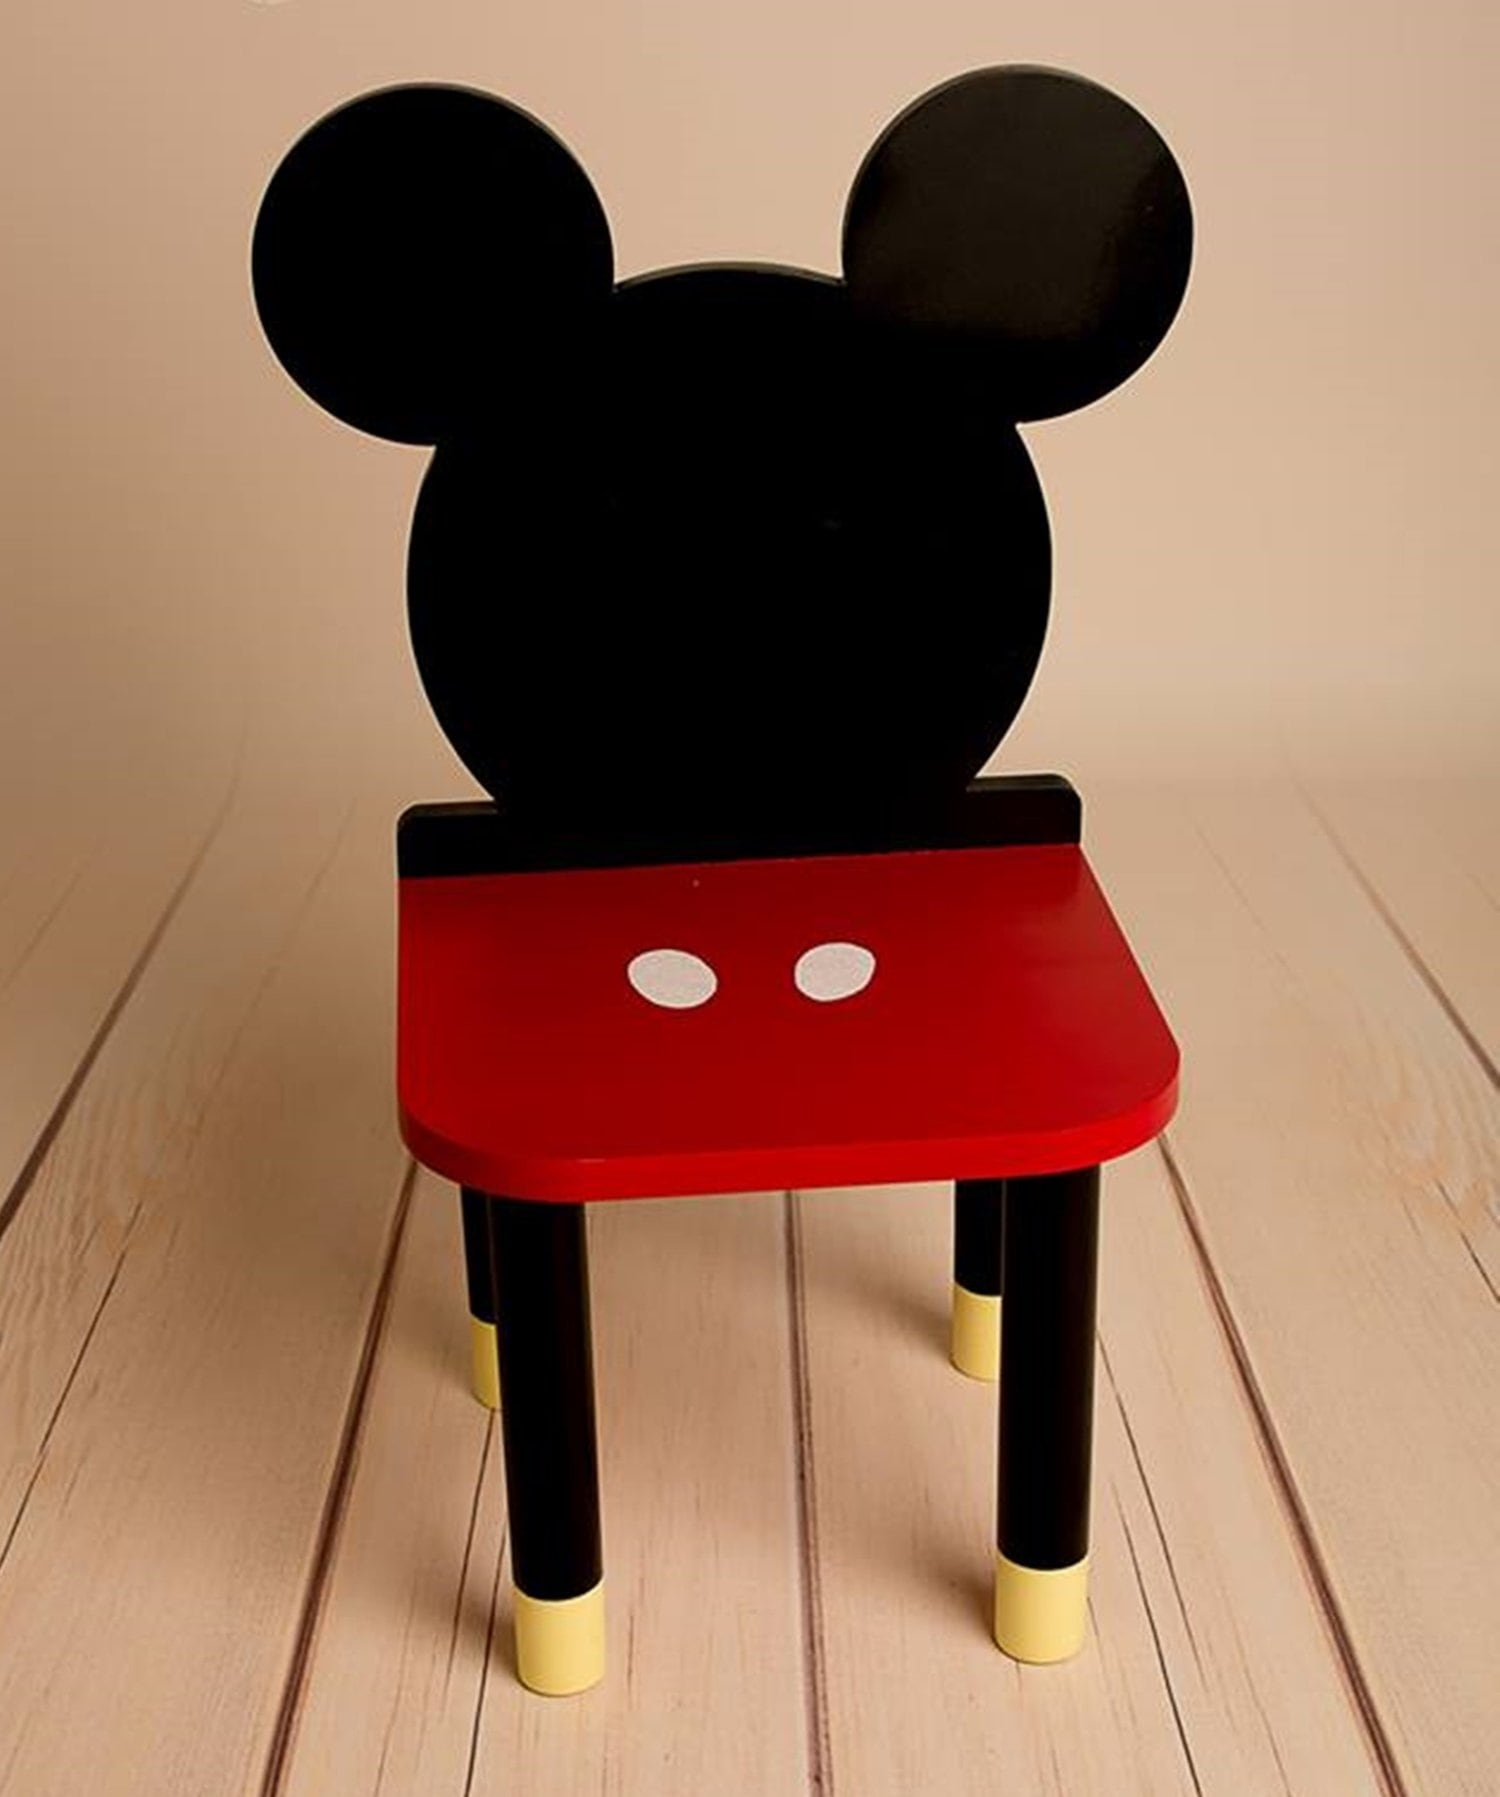 Mickey Mouse Chairs For Toddlers Mickey Mouse Chair Kids Furniture Toddler Gift Baby Toddler Chair Baby Furniture Kids Chair Baby Decor Wooden Baby Chair